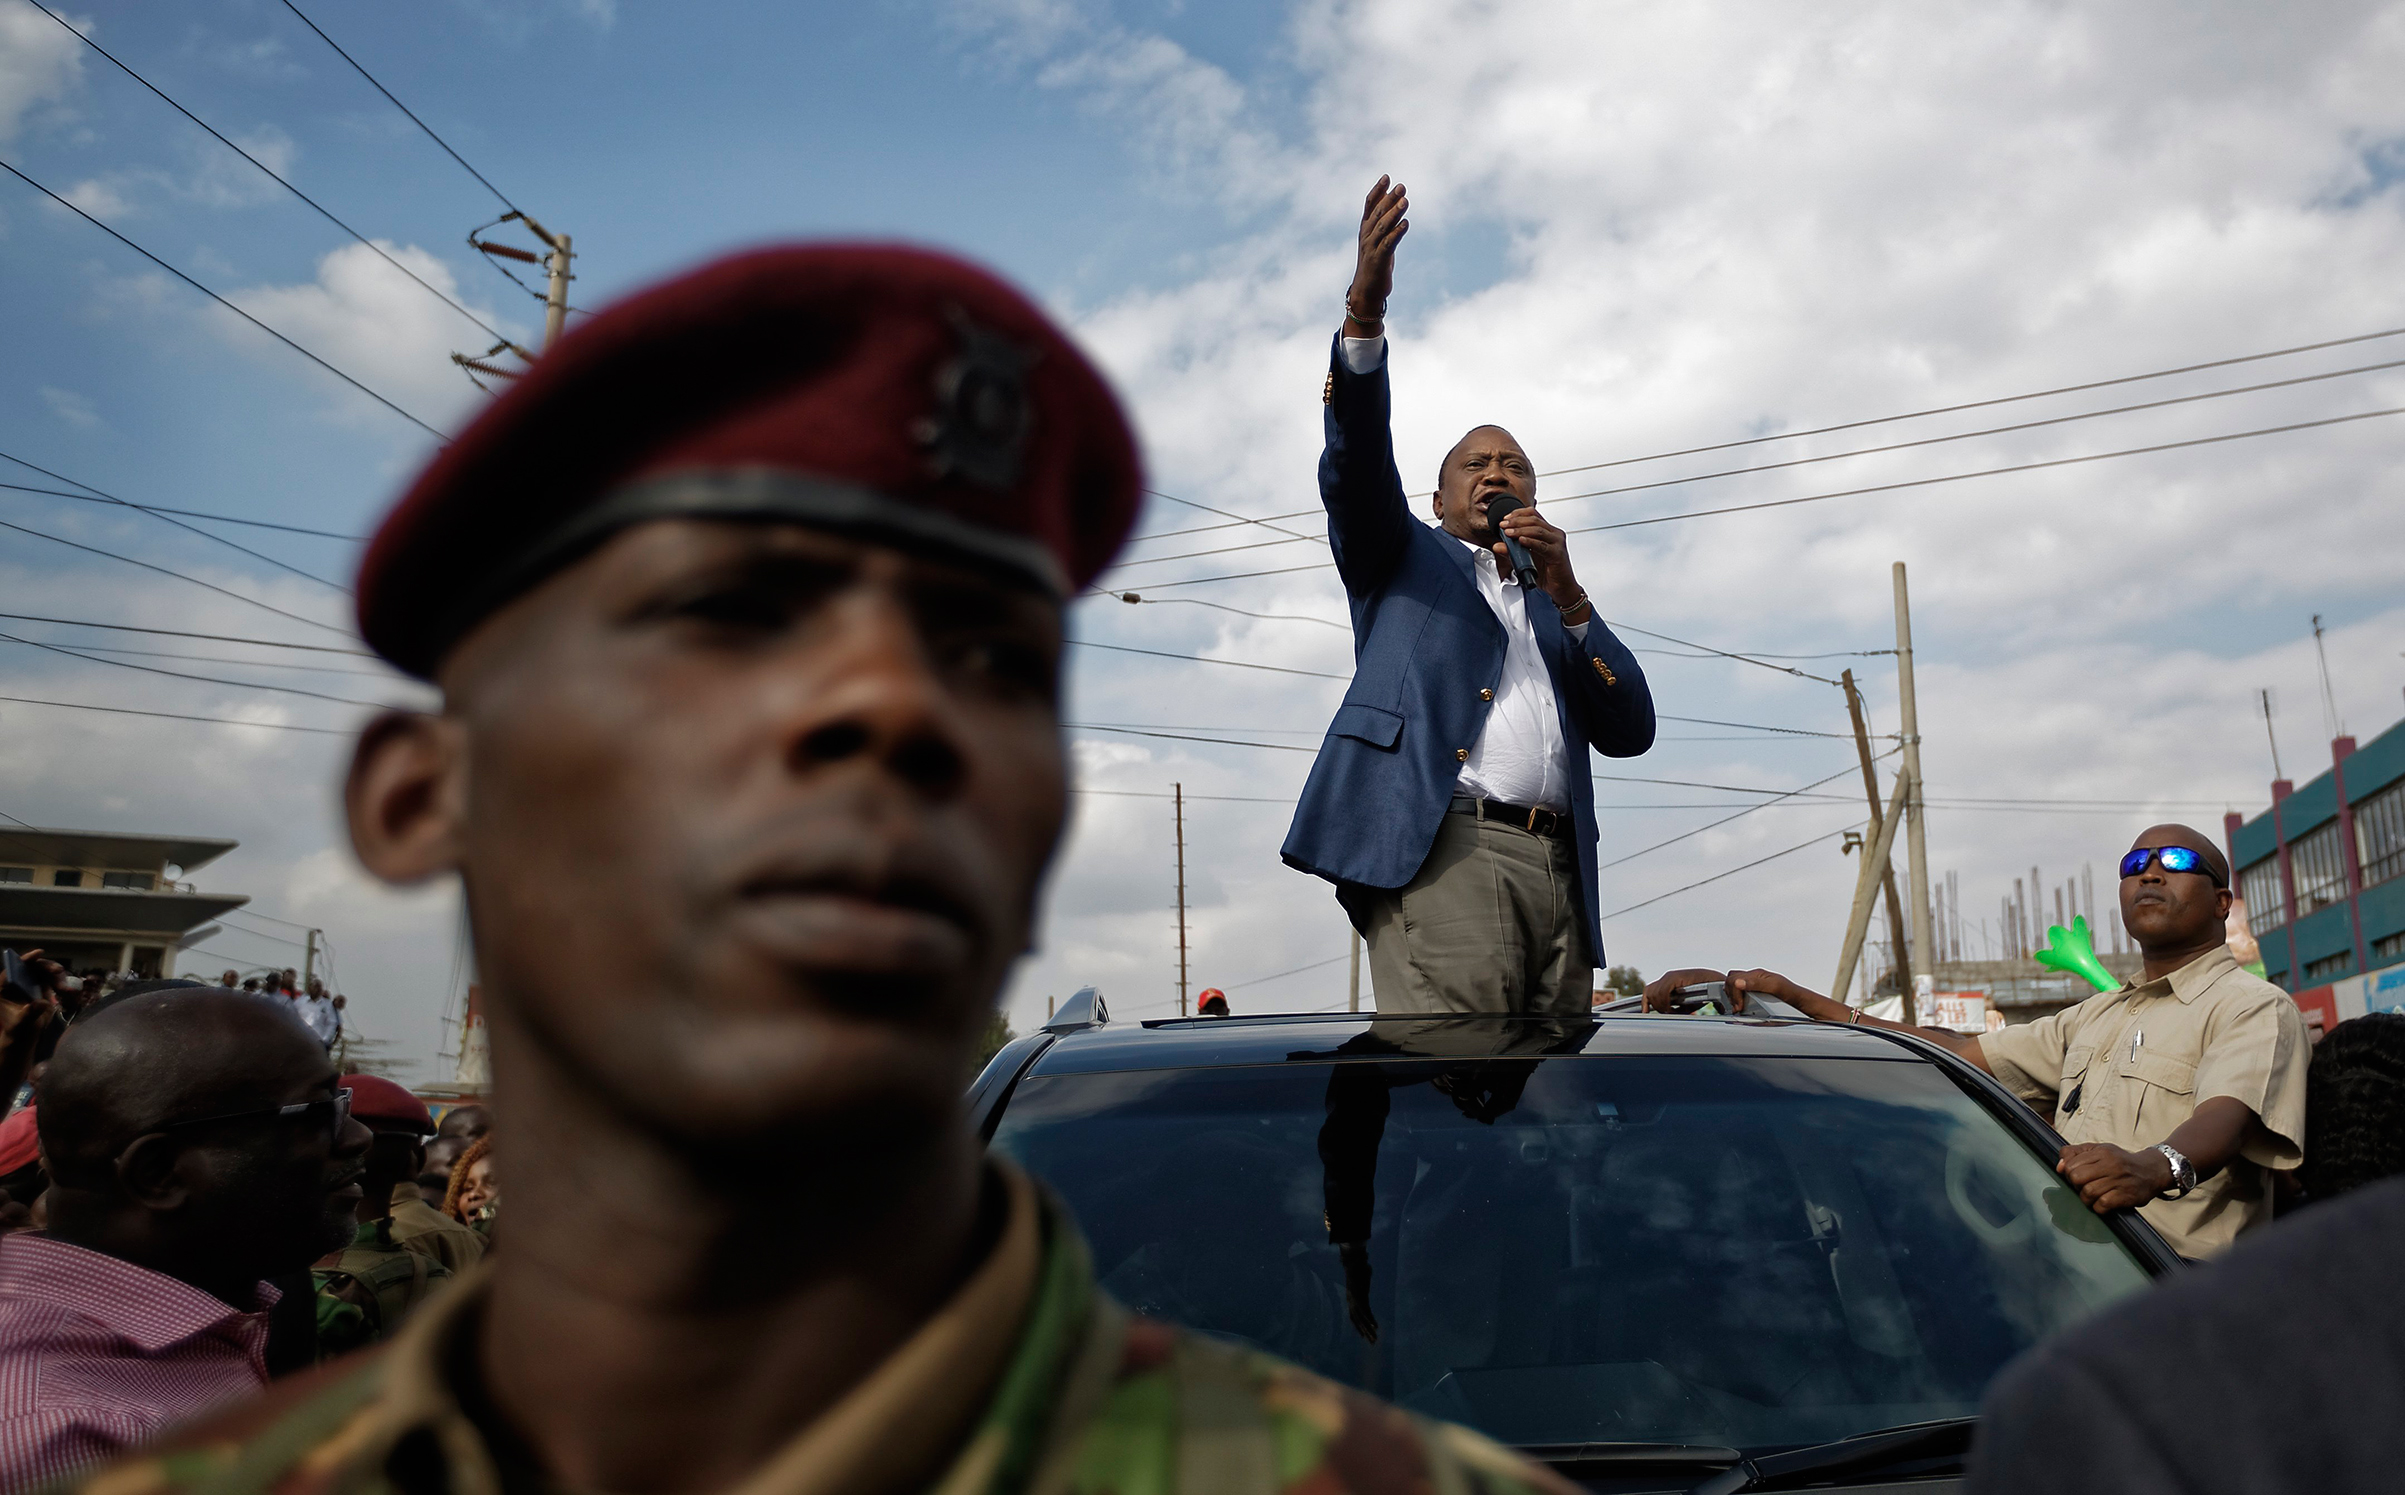 Kenya's President Uhuru Kenyatta, standing through the sunroof of the presidential vehicle, addresses his supporters as a presidential guard provides security, left, on a street in Ongata Rongai, on the outskirts of Nairobi, Kenya, Sept. 5, 2017. Kenya faces an Oct. 17 vote after the Supreme Court nullified Kenyatta's re-election but opposition leader Raila Odinga said Tuesday he does not accept the date, demanding reforms to the electoral commission and other  legal and constitutional guarantees.